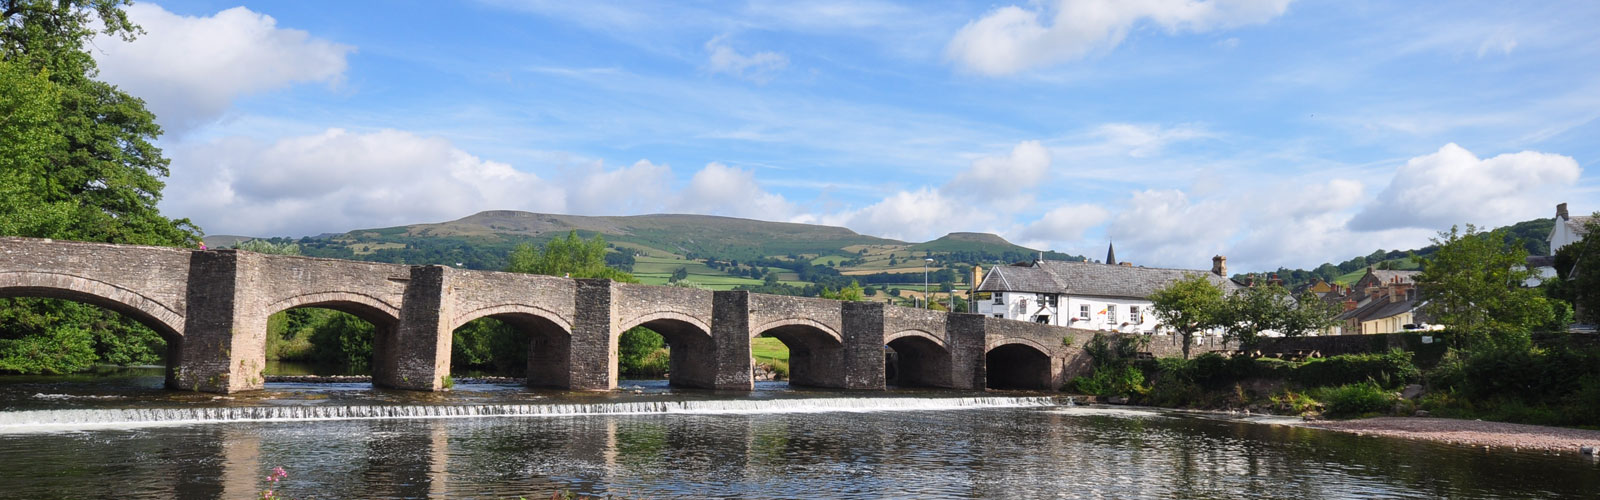 The bridge into nearby Crickhowell